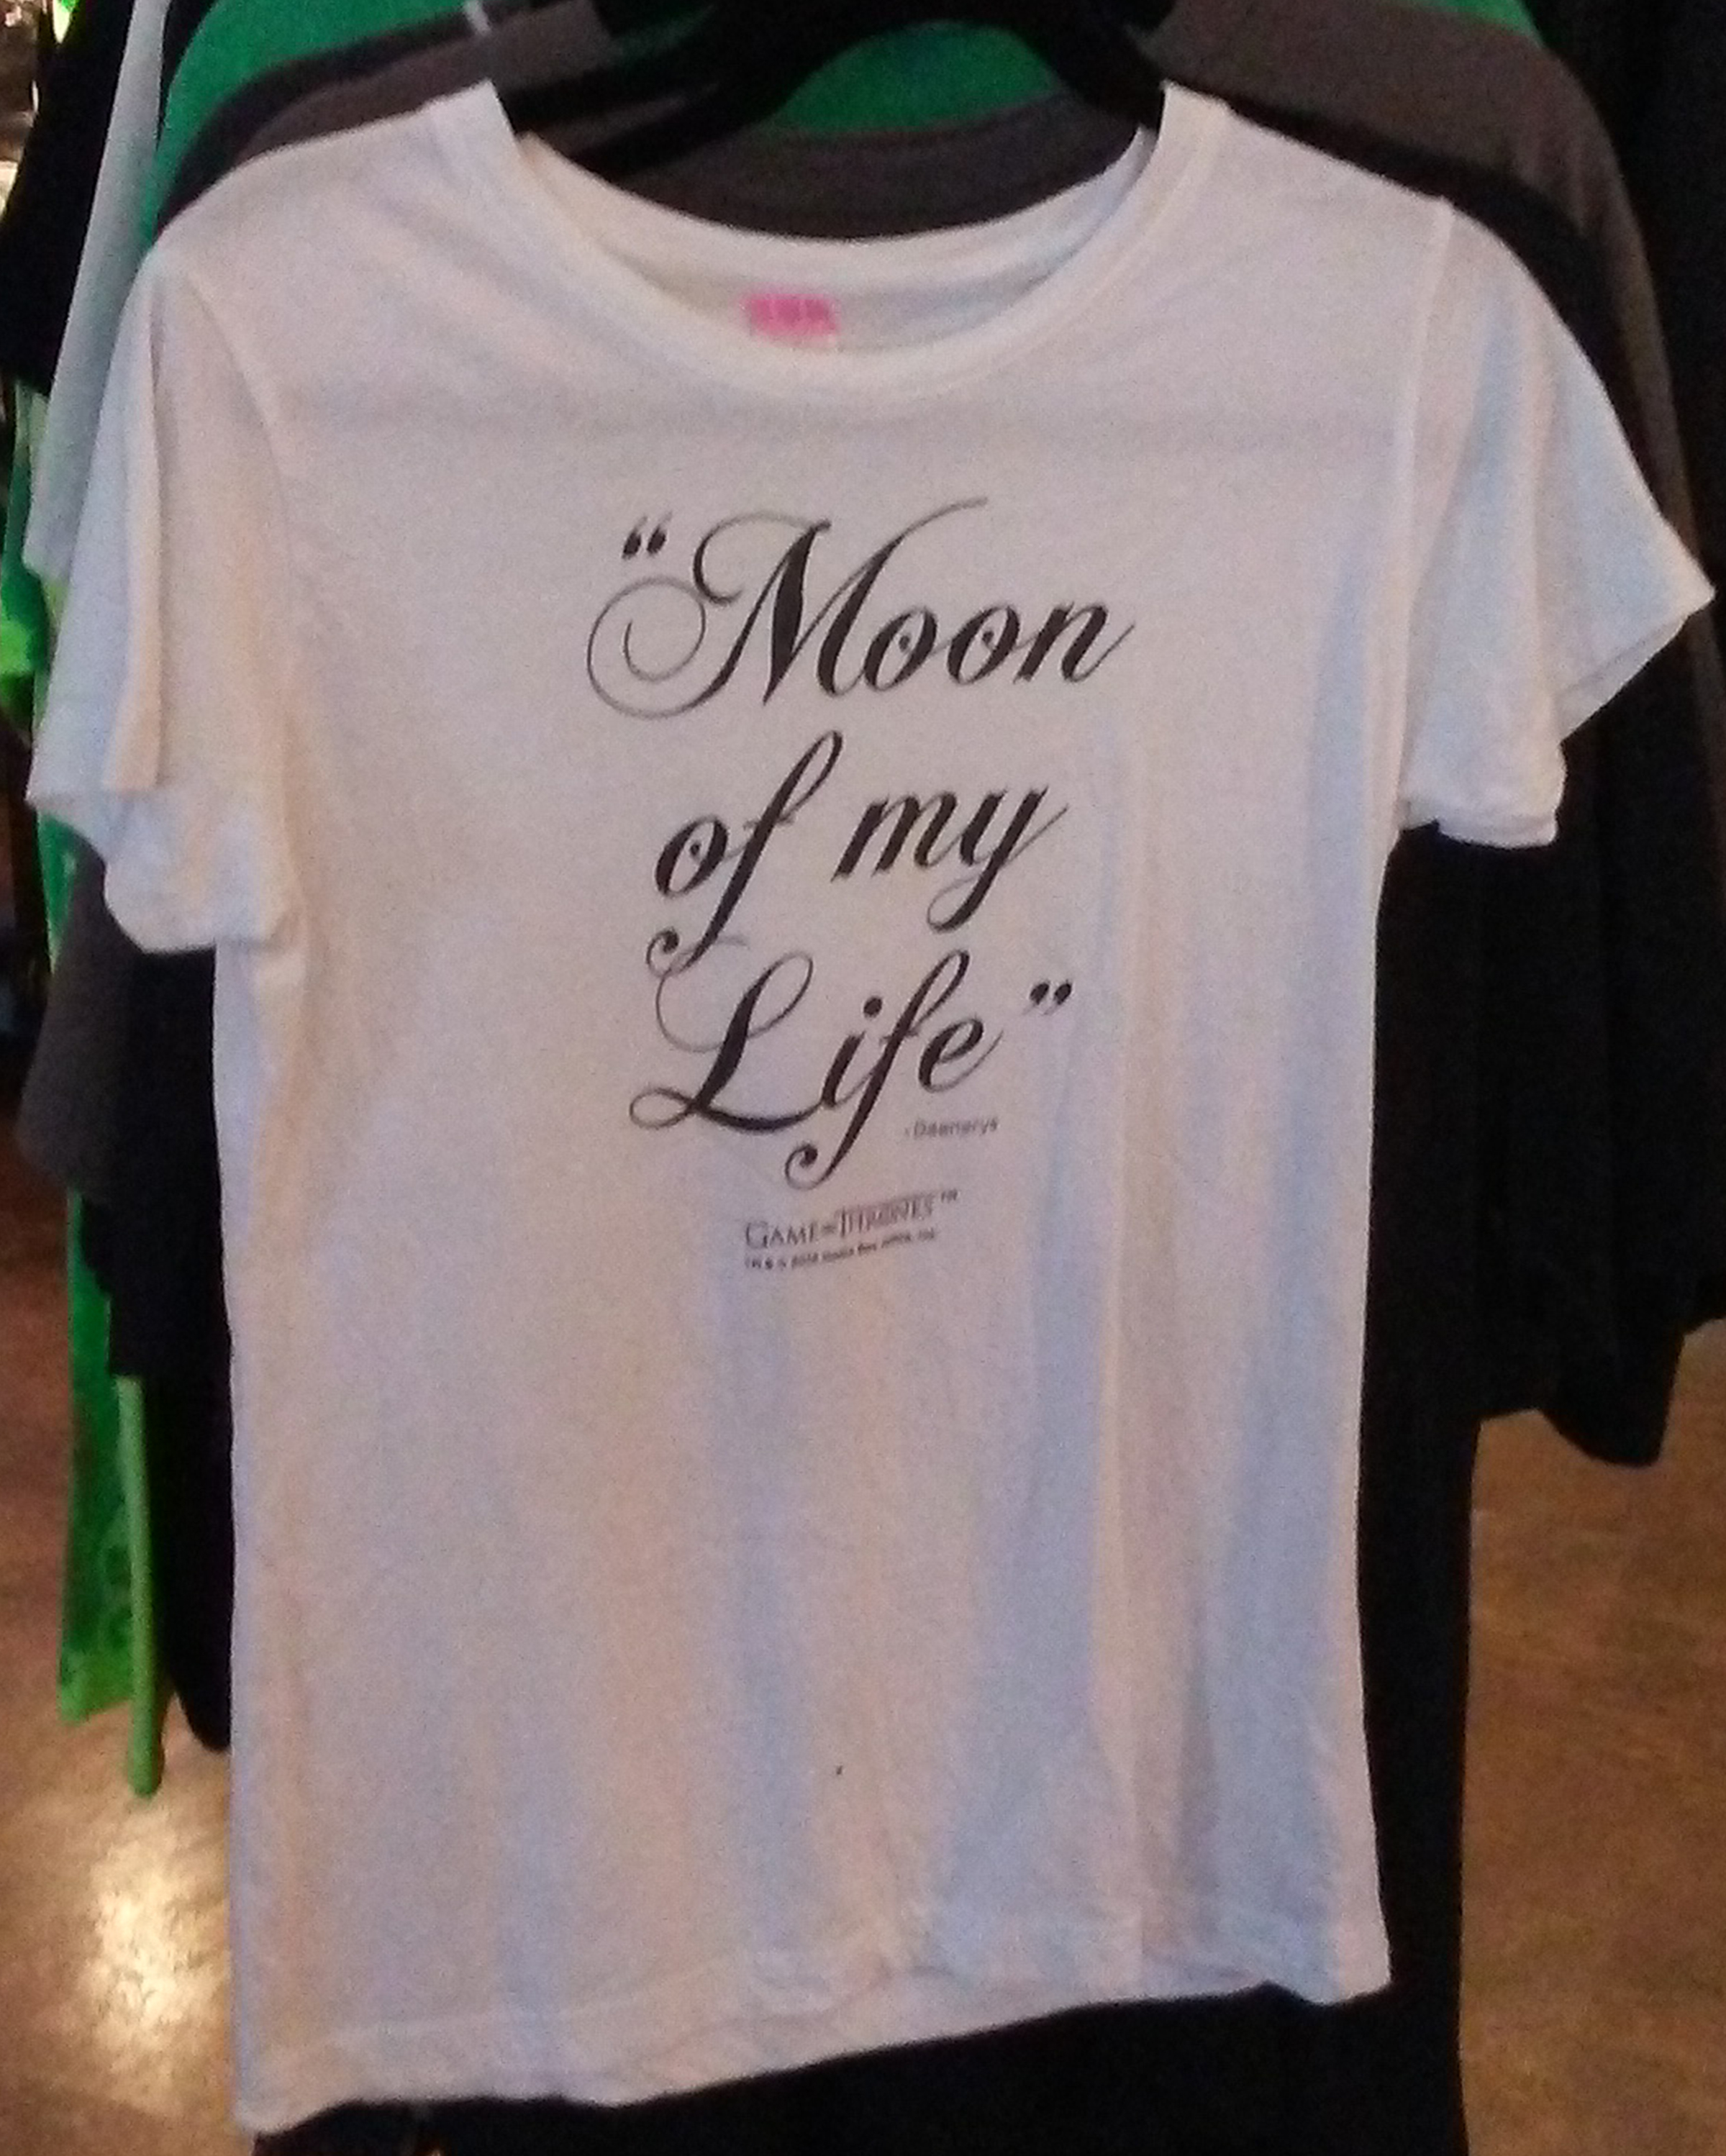 Superstar Universe, LLC HBO Game of Thrones Moon of My Life Women's Slim Fit T-Shirt WITH FREE SHIPPING